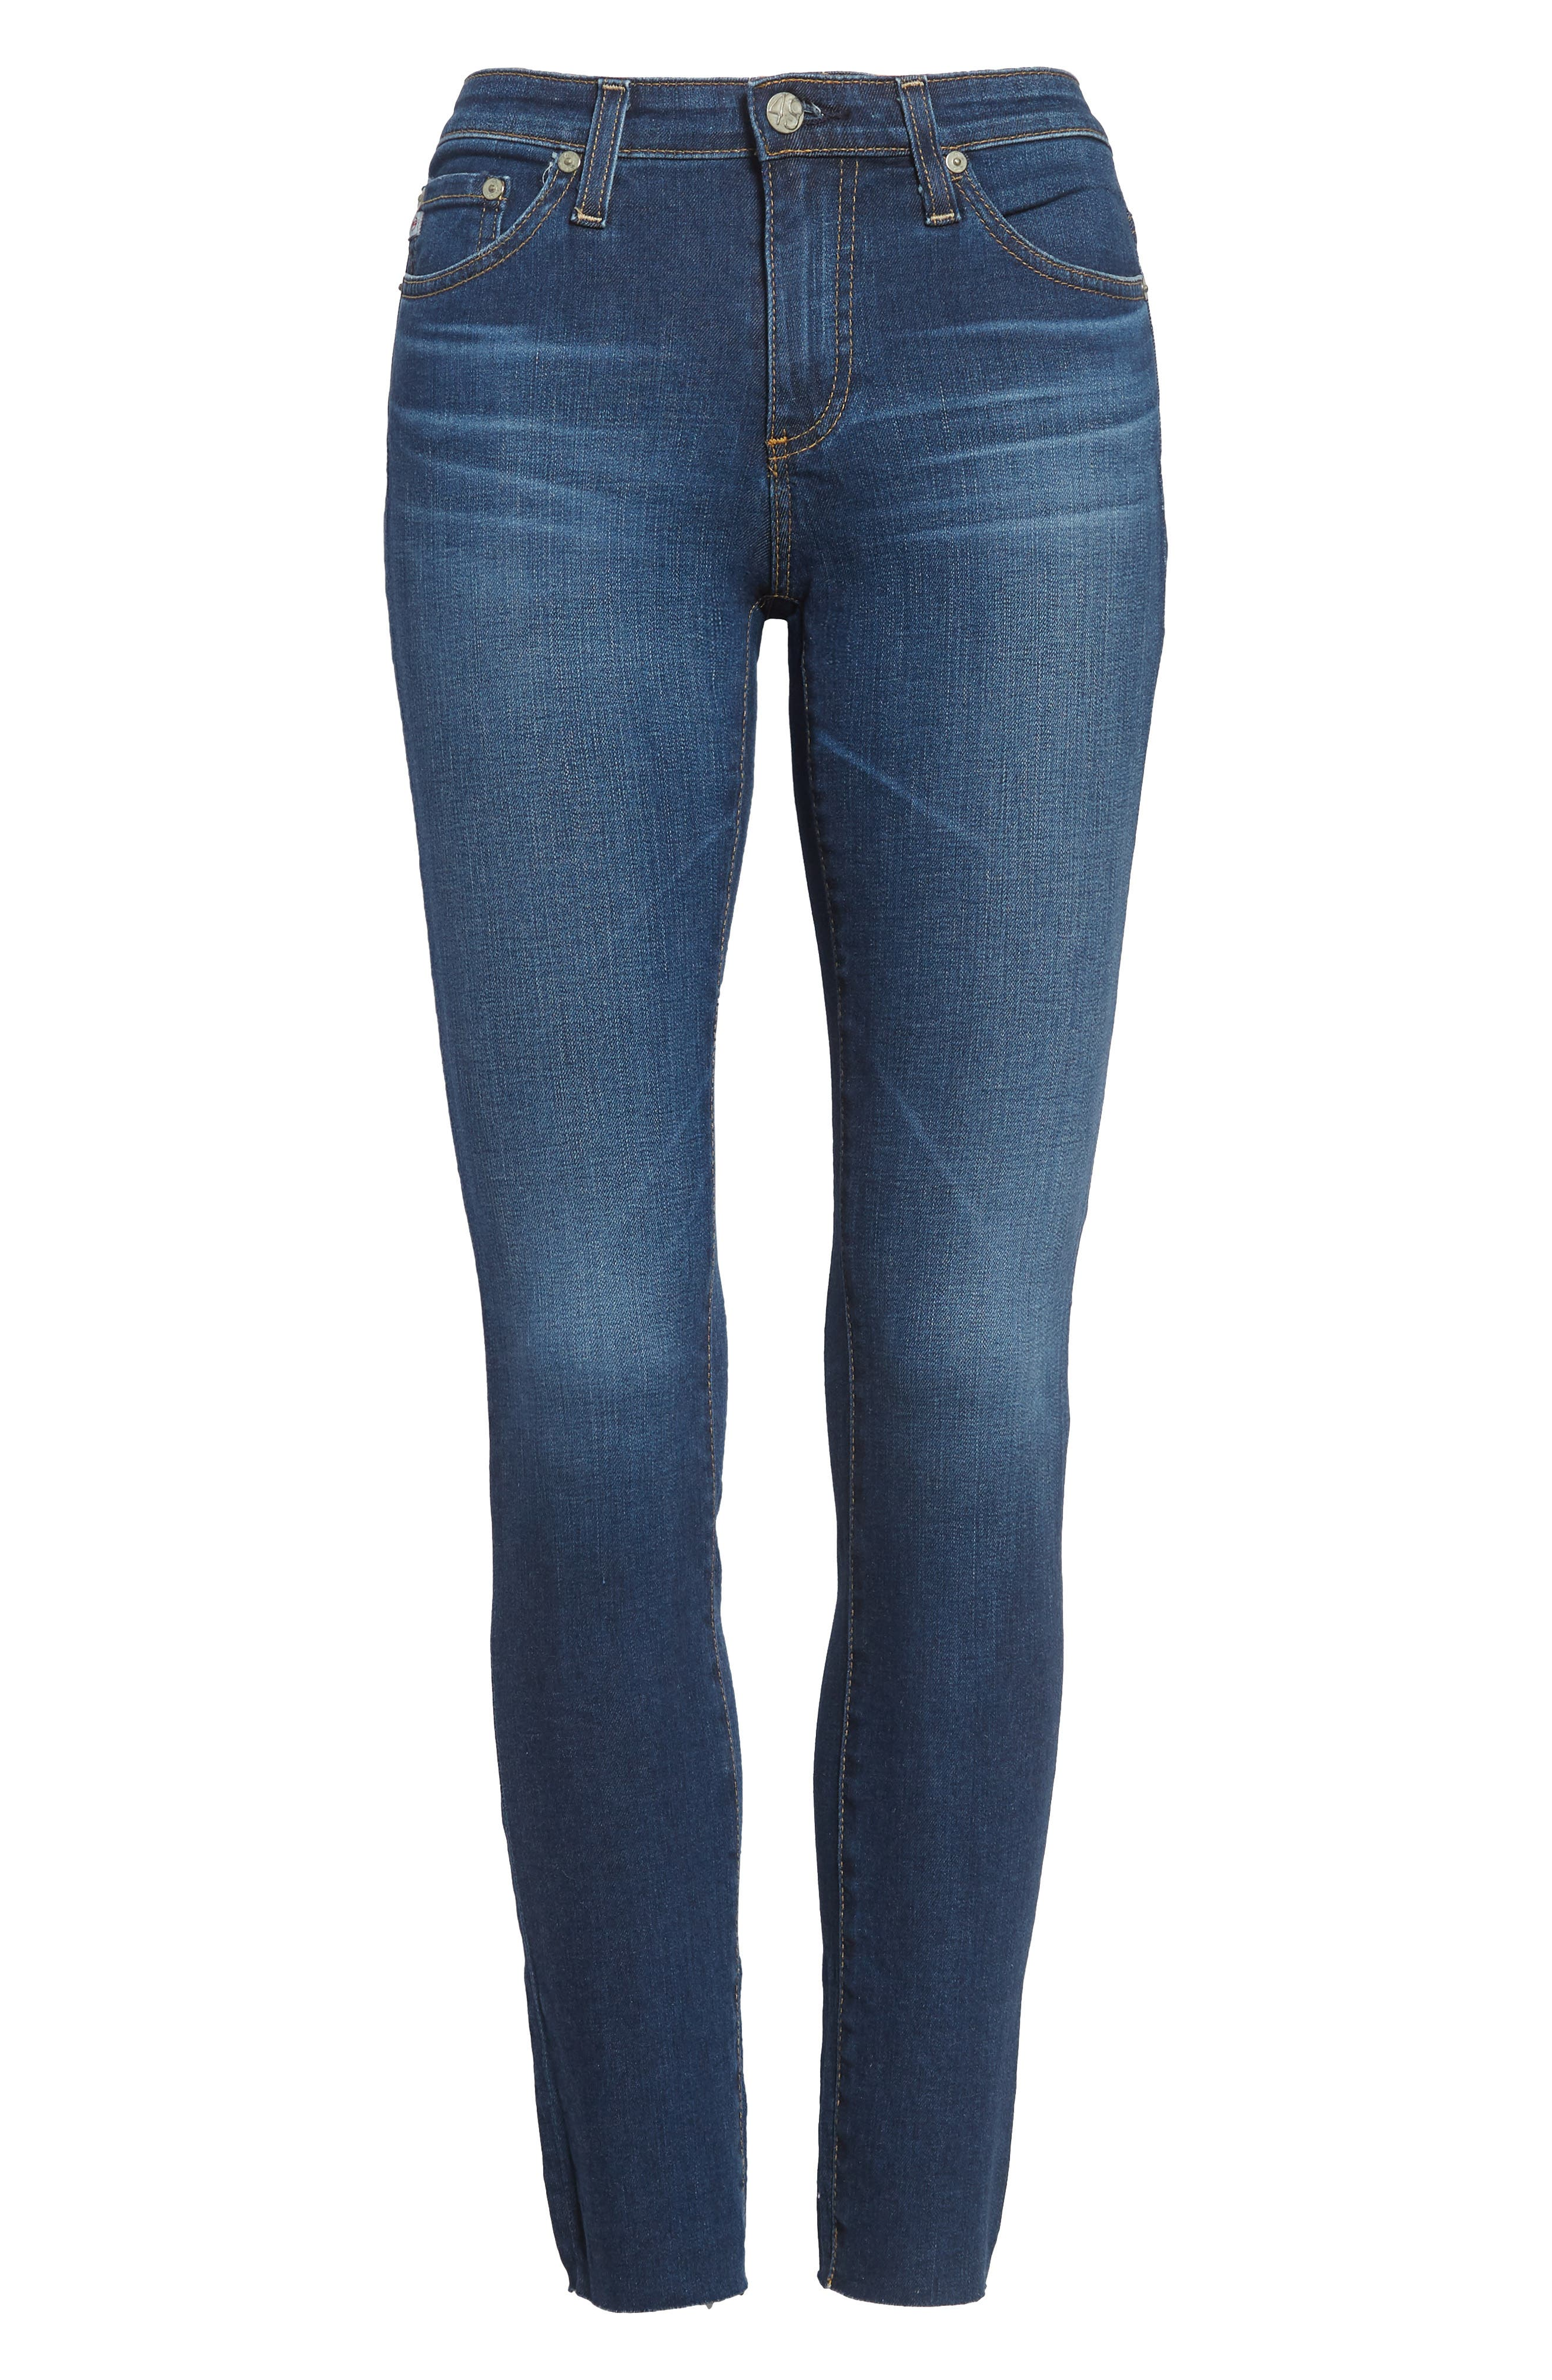 AG, 'The Legging' Ankle Jeans, Main thumbnail 1, color, 7YR BREAK W/ RAW HEM